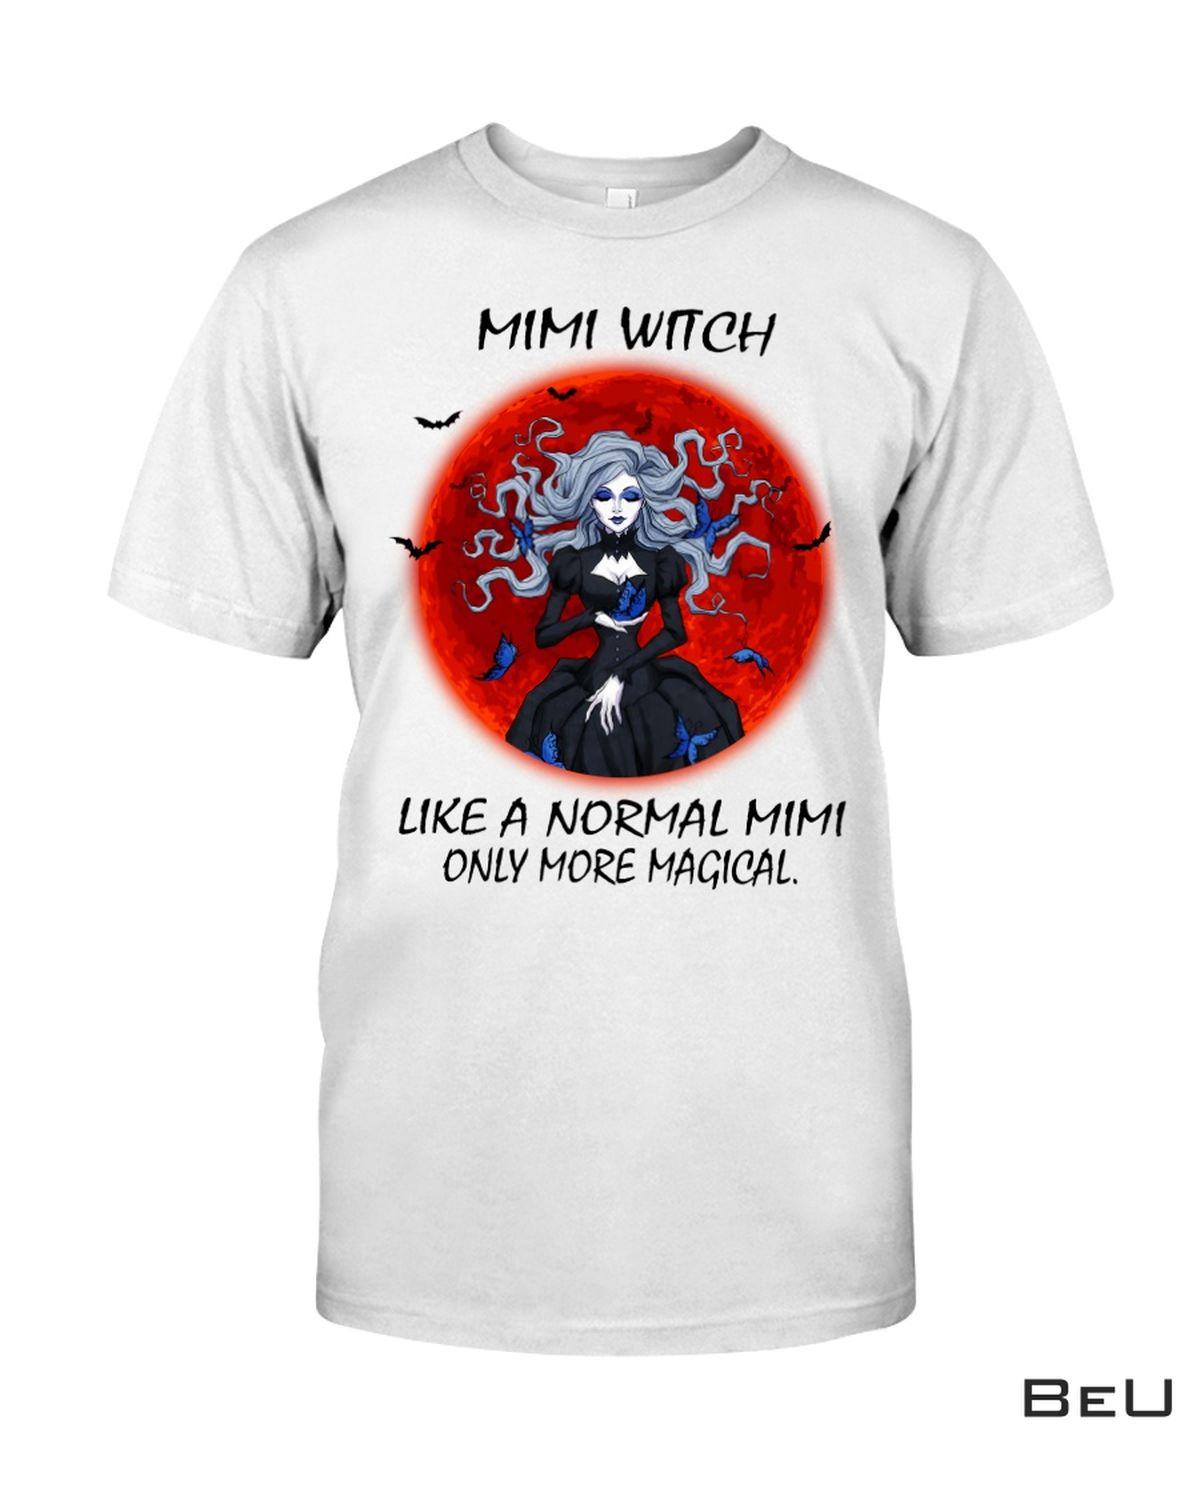 Mimi Witch Like A Normal Mimi Only More Magical Shirt, hoodie, tank top